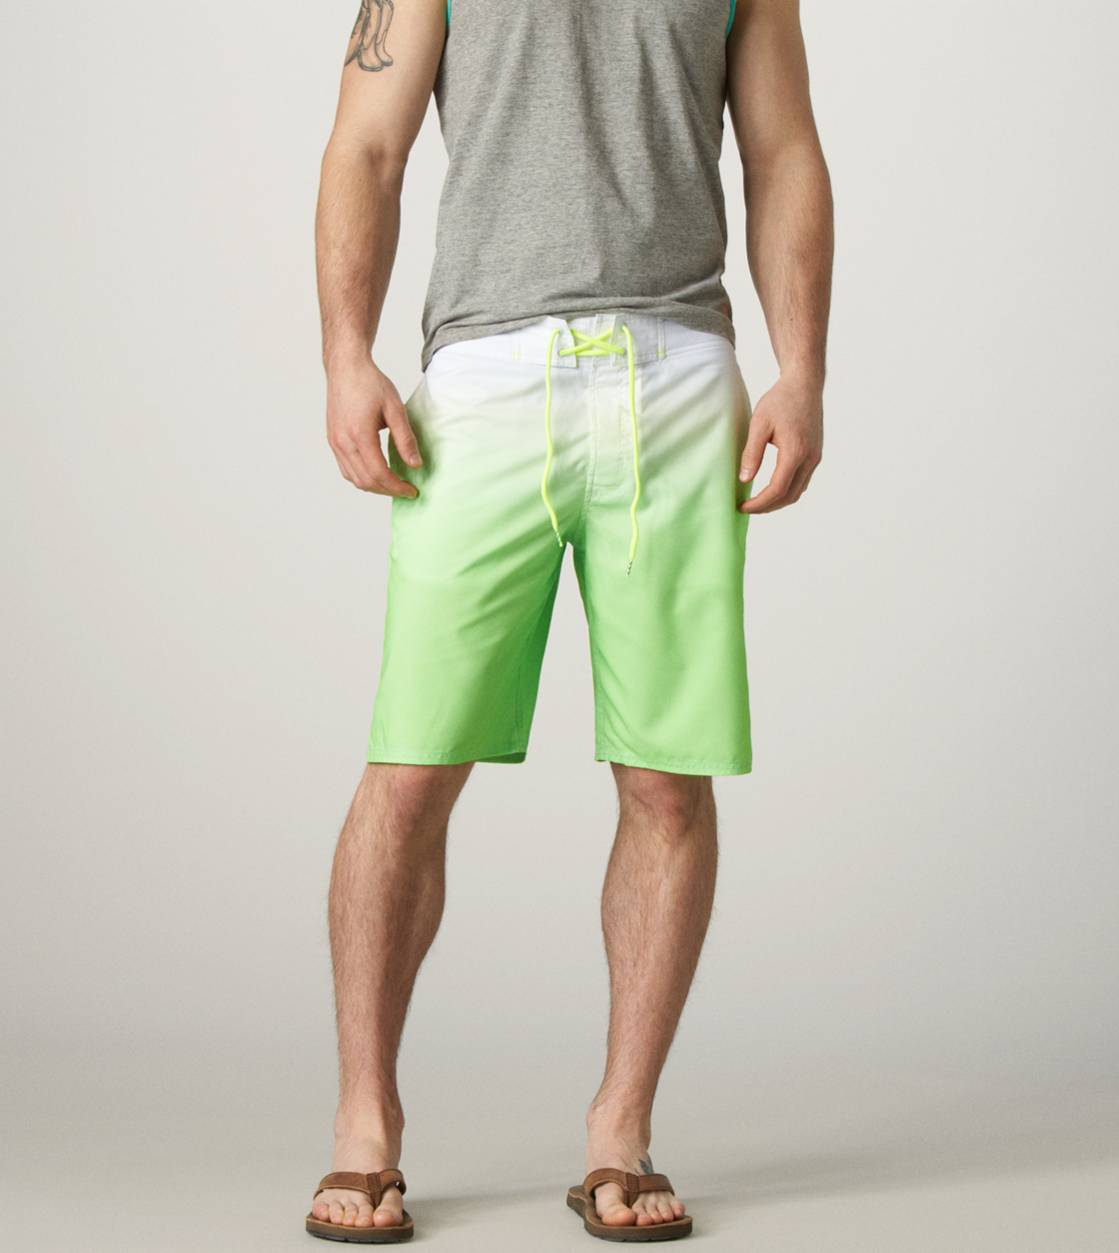 Neon Lemon Lime AE Ombre Board Short